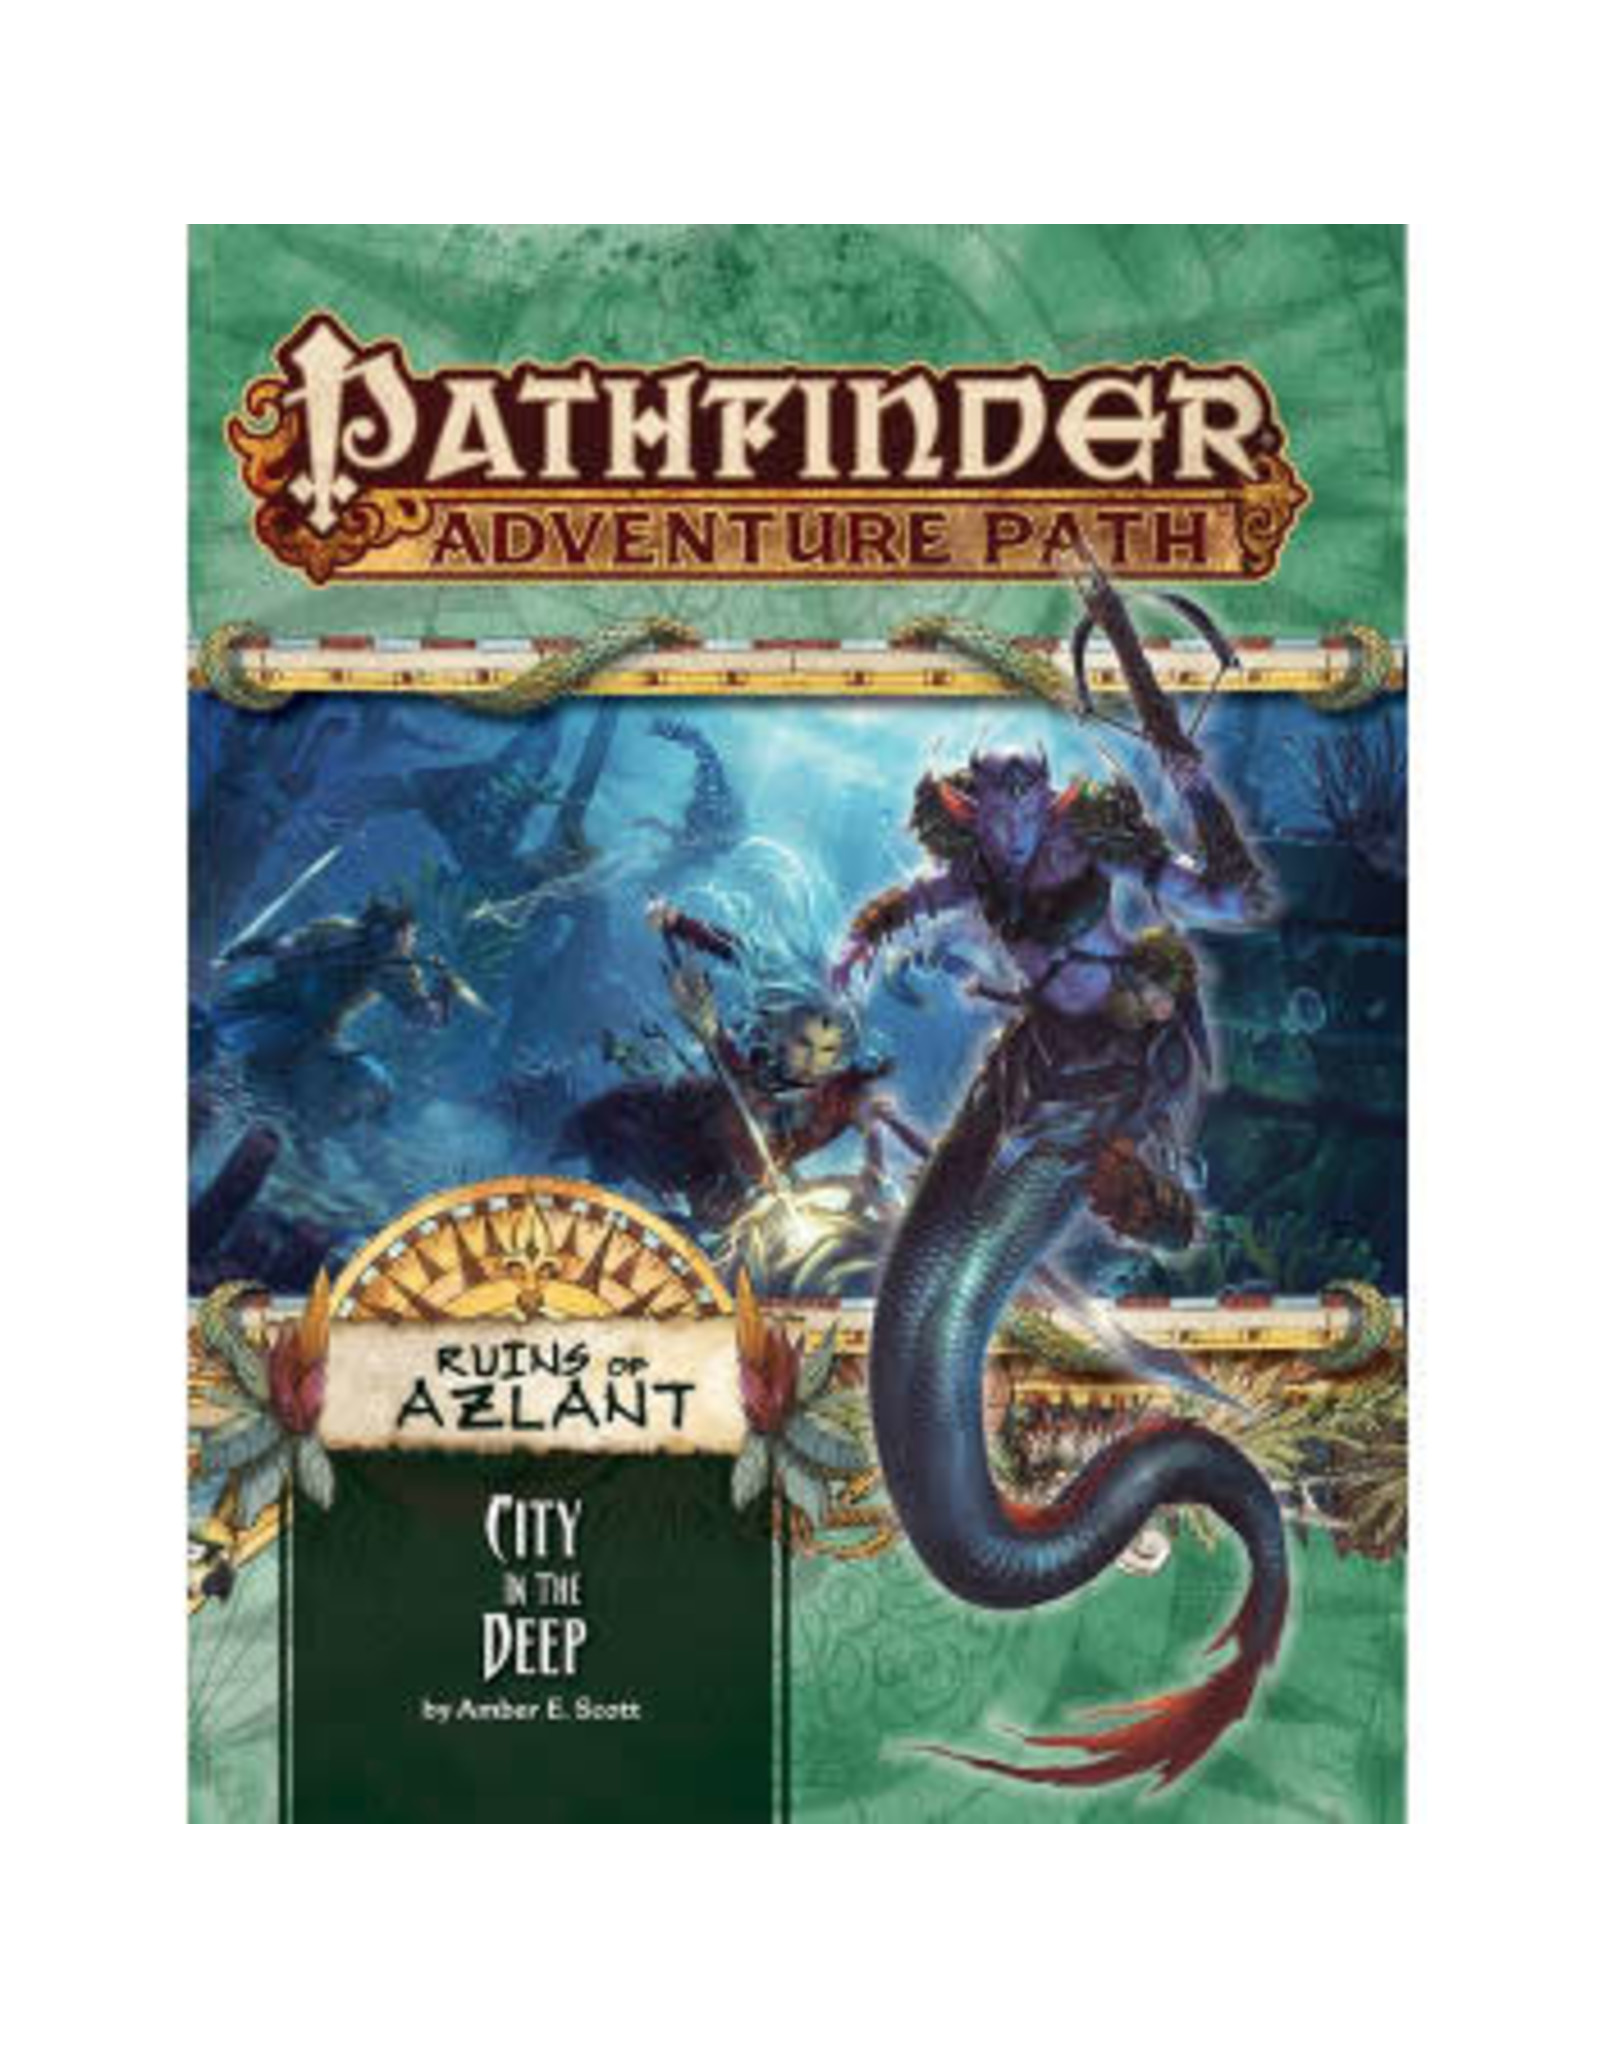 Pathfinder Adventure Path: Ruins of Azlant 4 City in the Deep